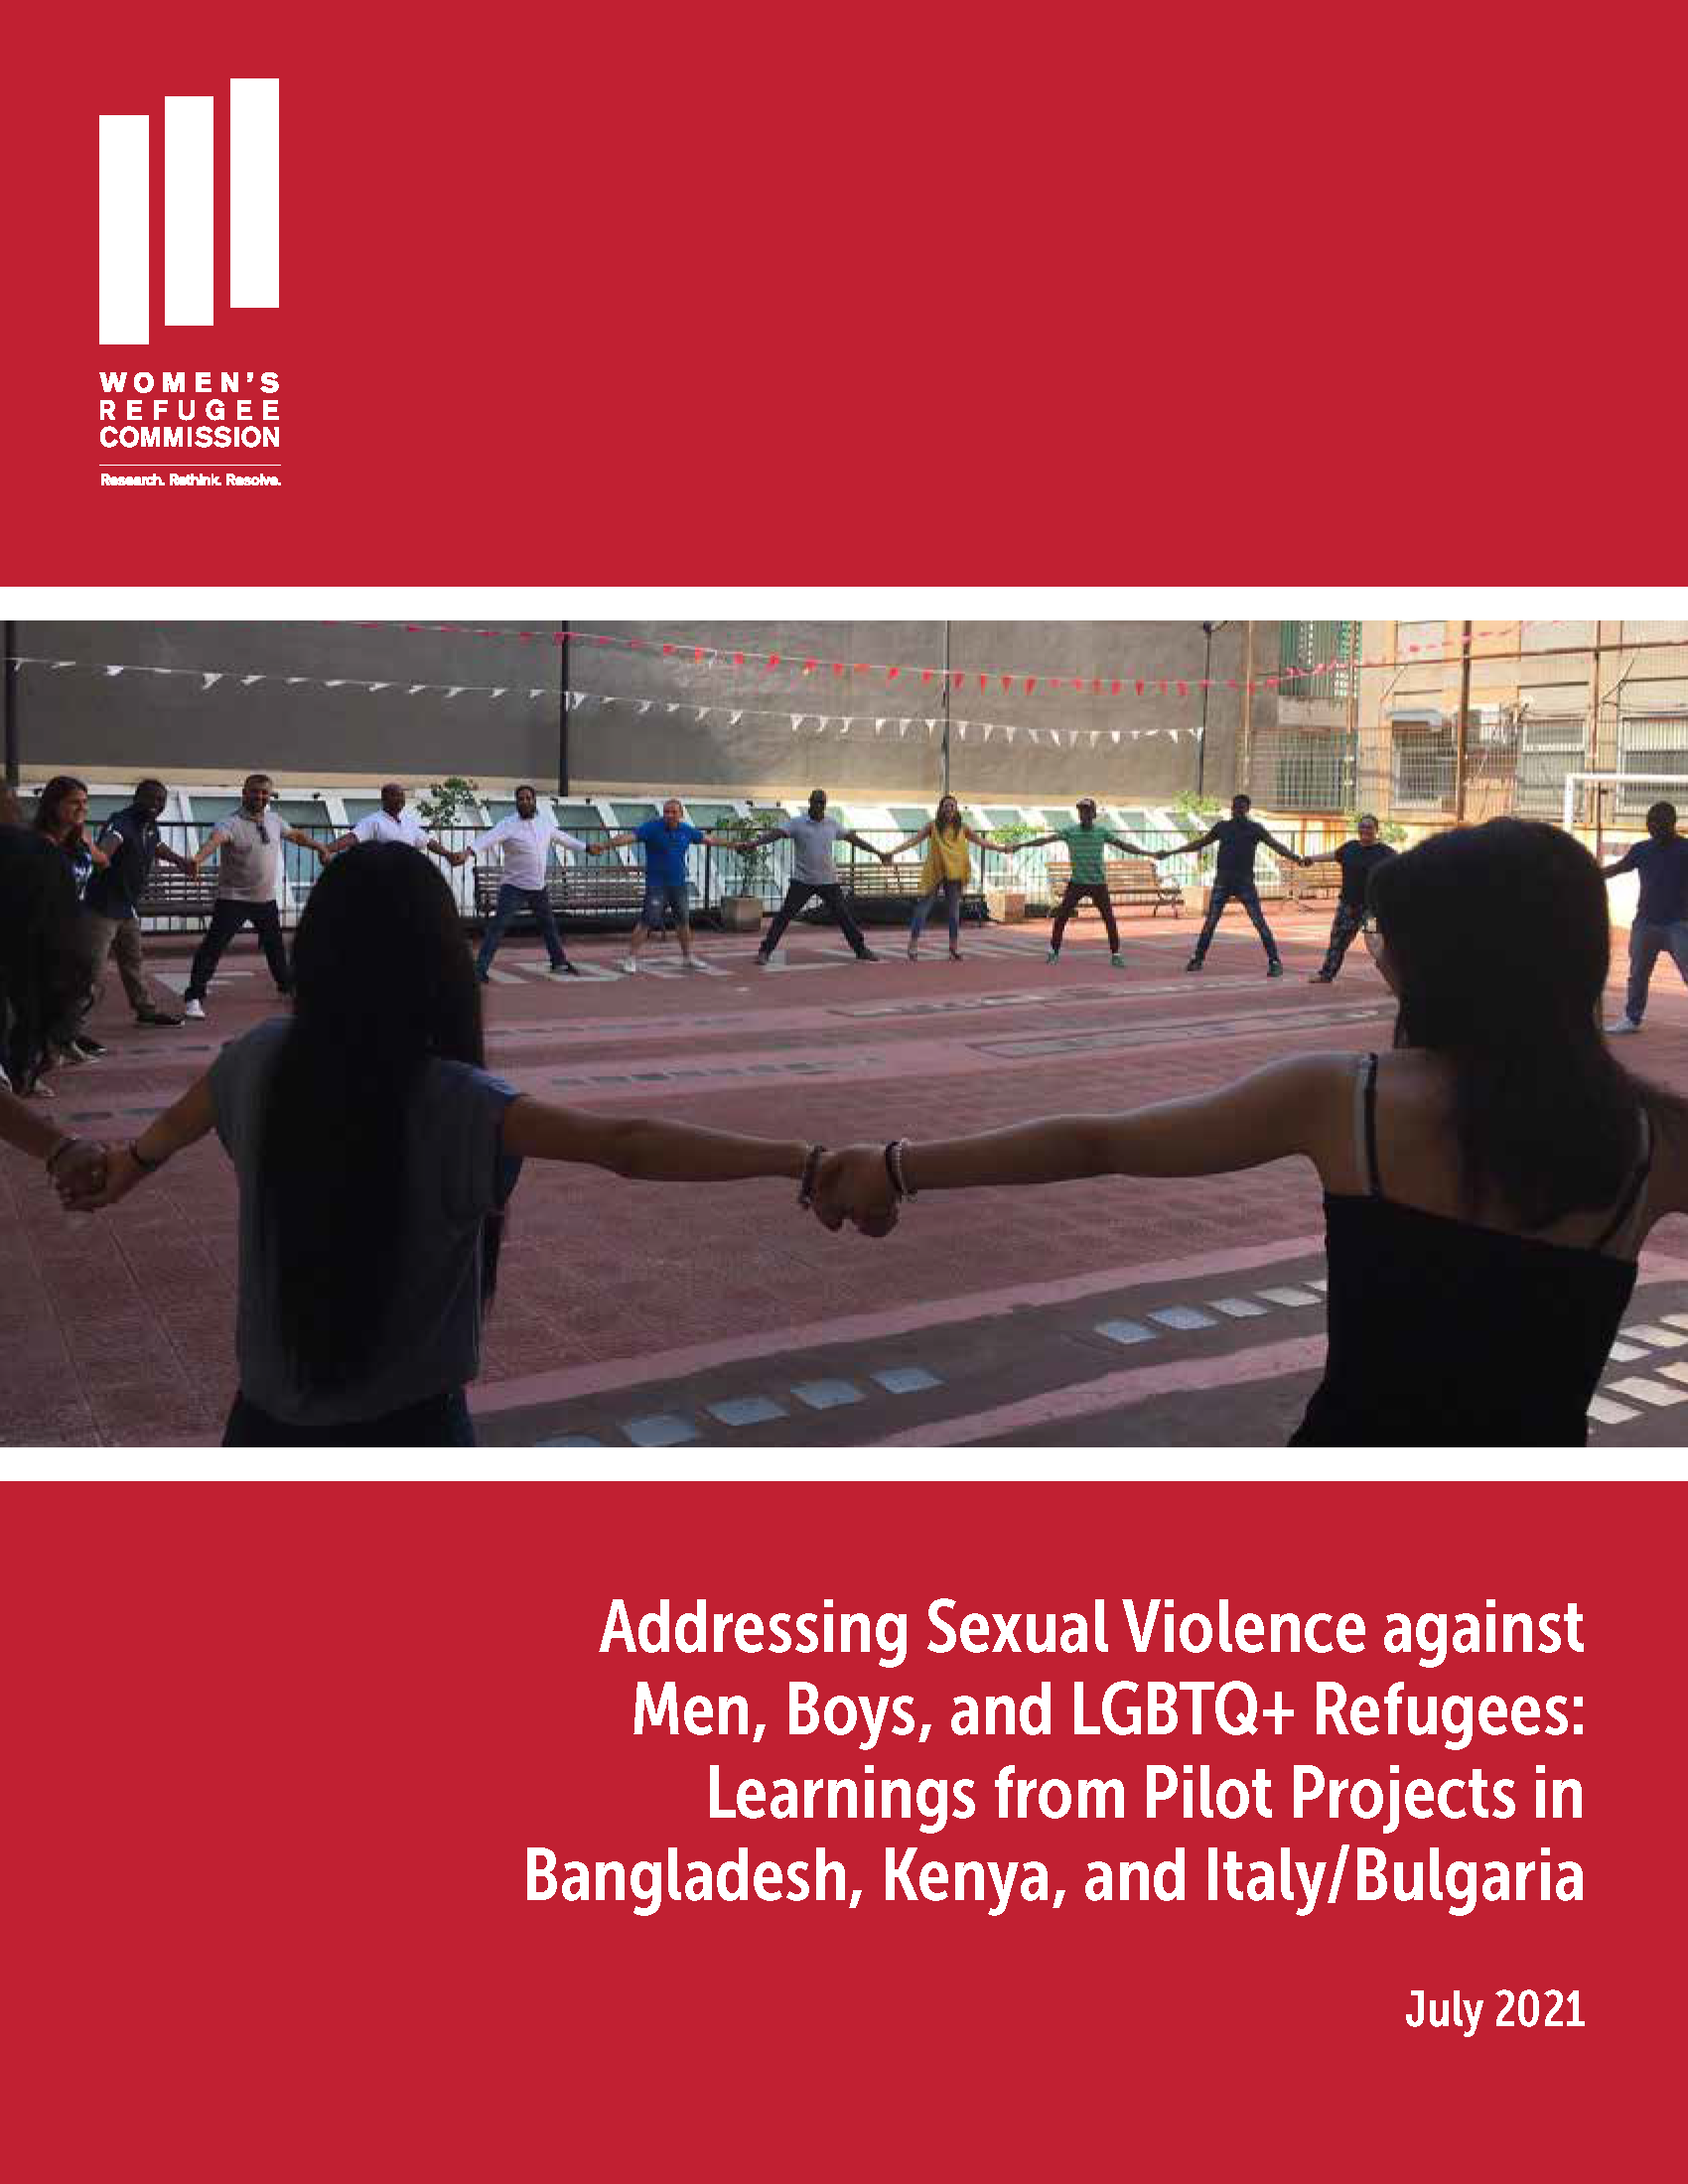 Addressing Sexual Violence against Men, Boys, and LGBTQ+ Refugees Learnings from Pilot Projects Cover Image